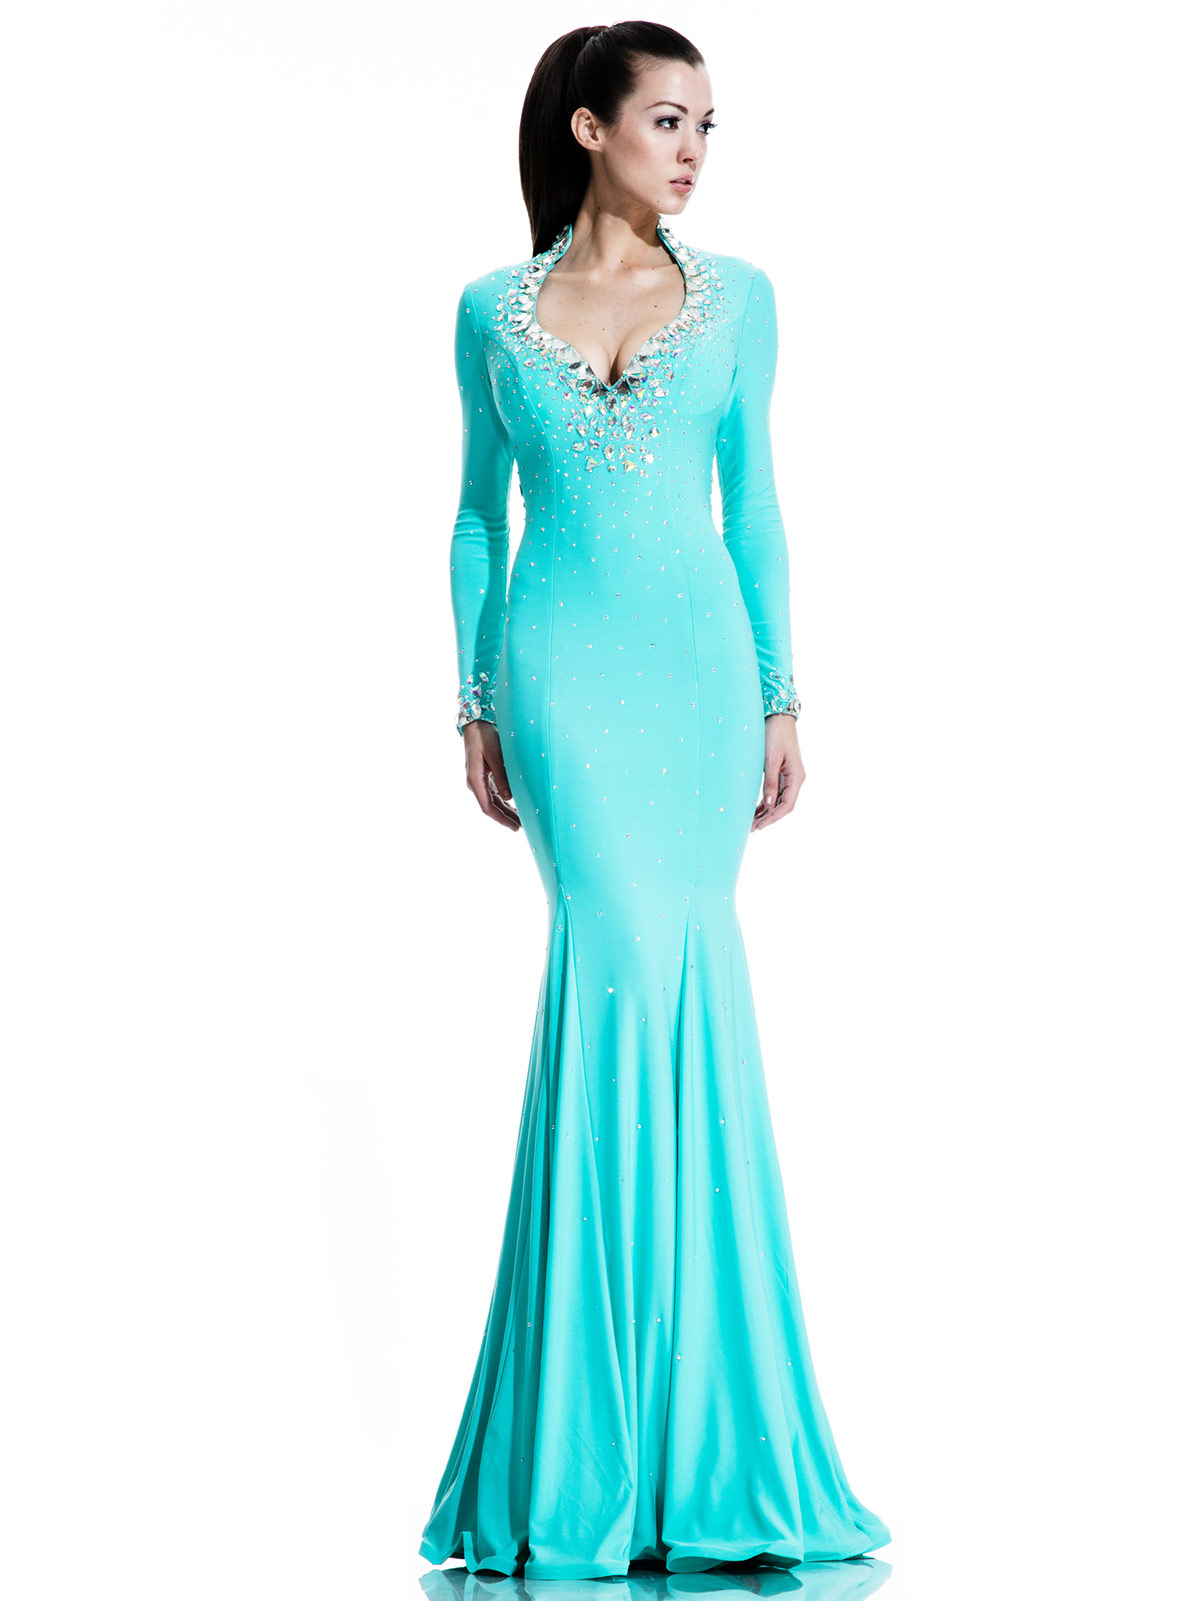 Johnathan Kayne Pageant Dresses | PageantDesigns.com